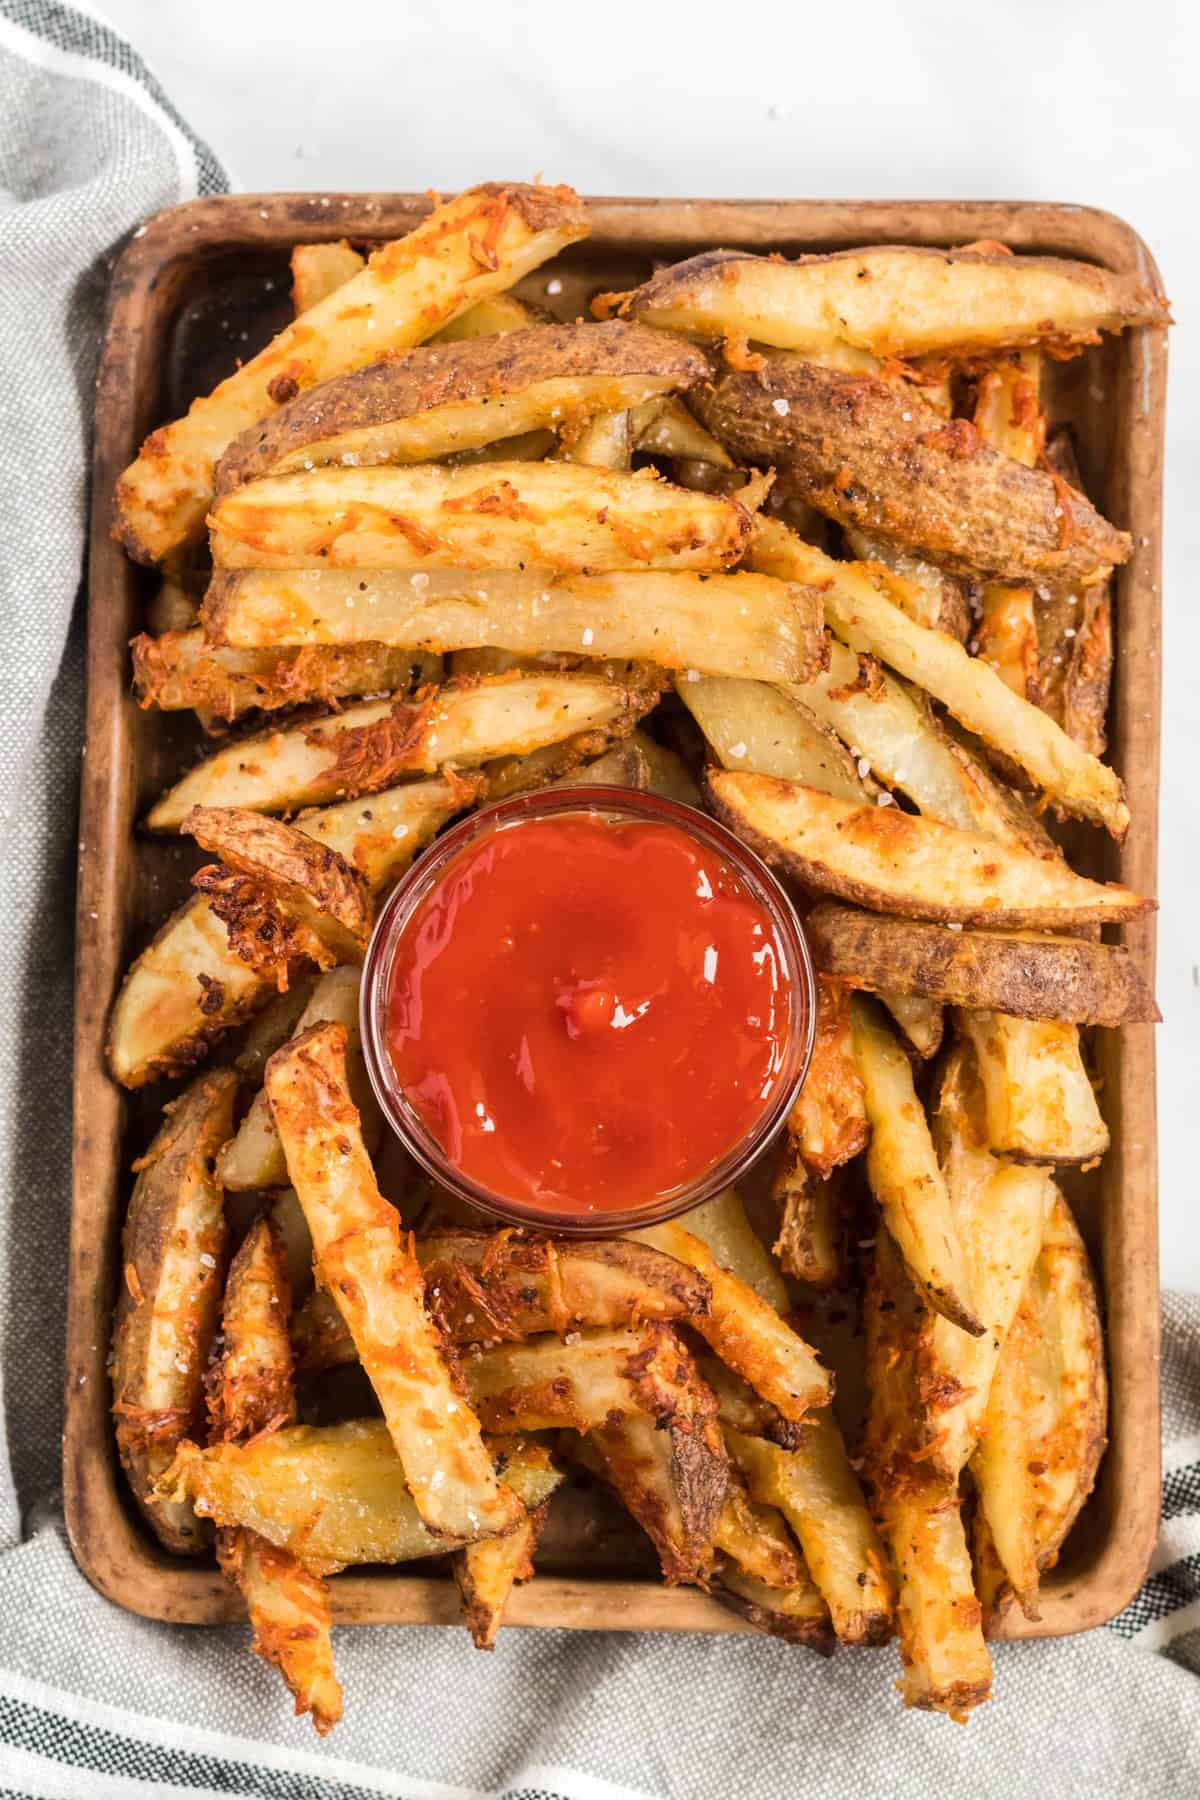 potato wedges on a brown serving tray with ketchup in the middle